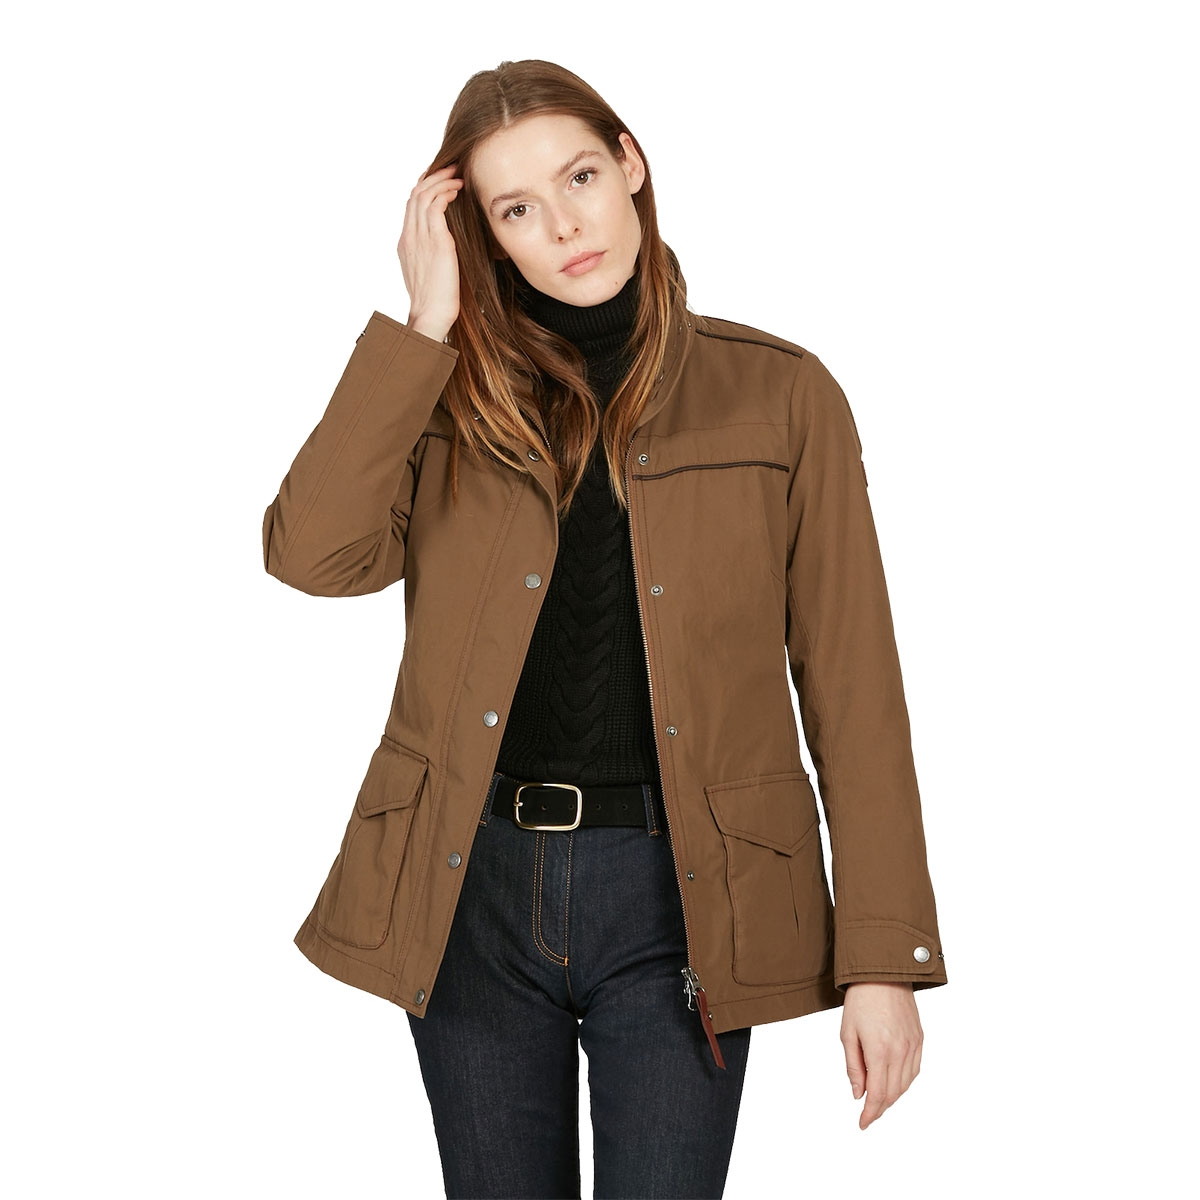 Image of Aigle Parcours Lady Parka Jacket (Women s) - Brown ... 1c51dfe7c3